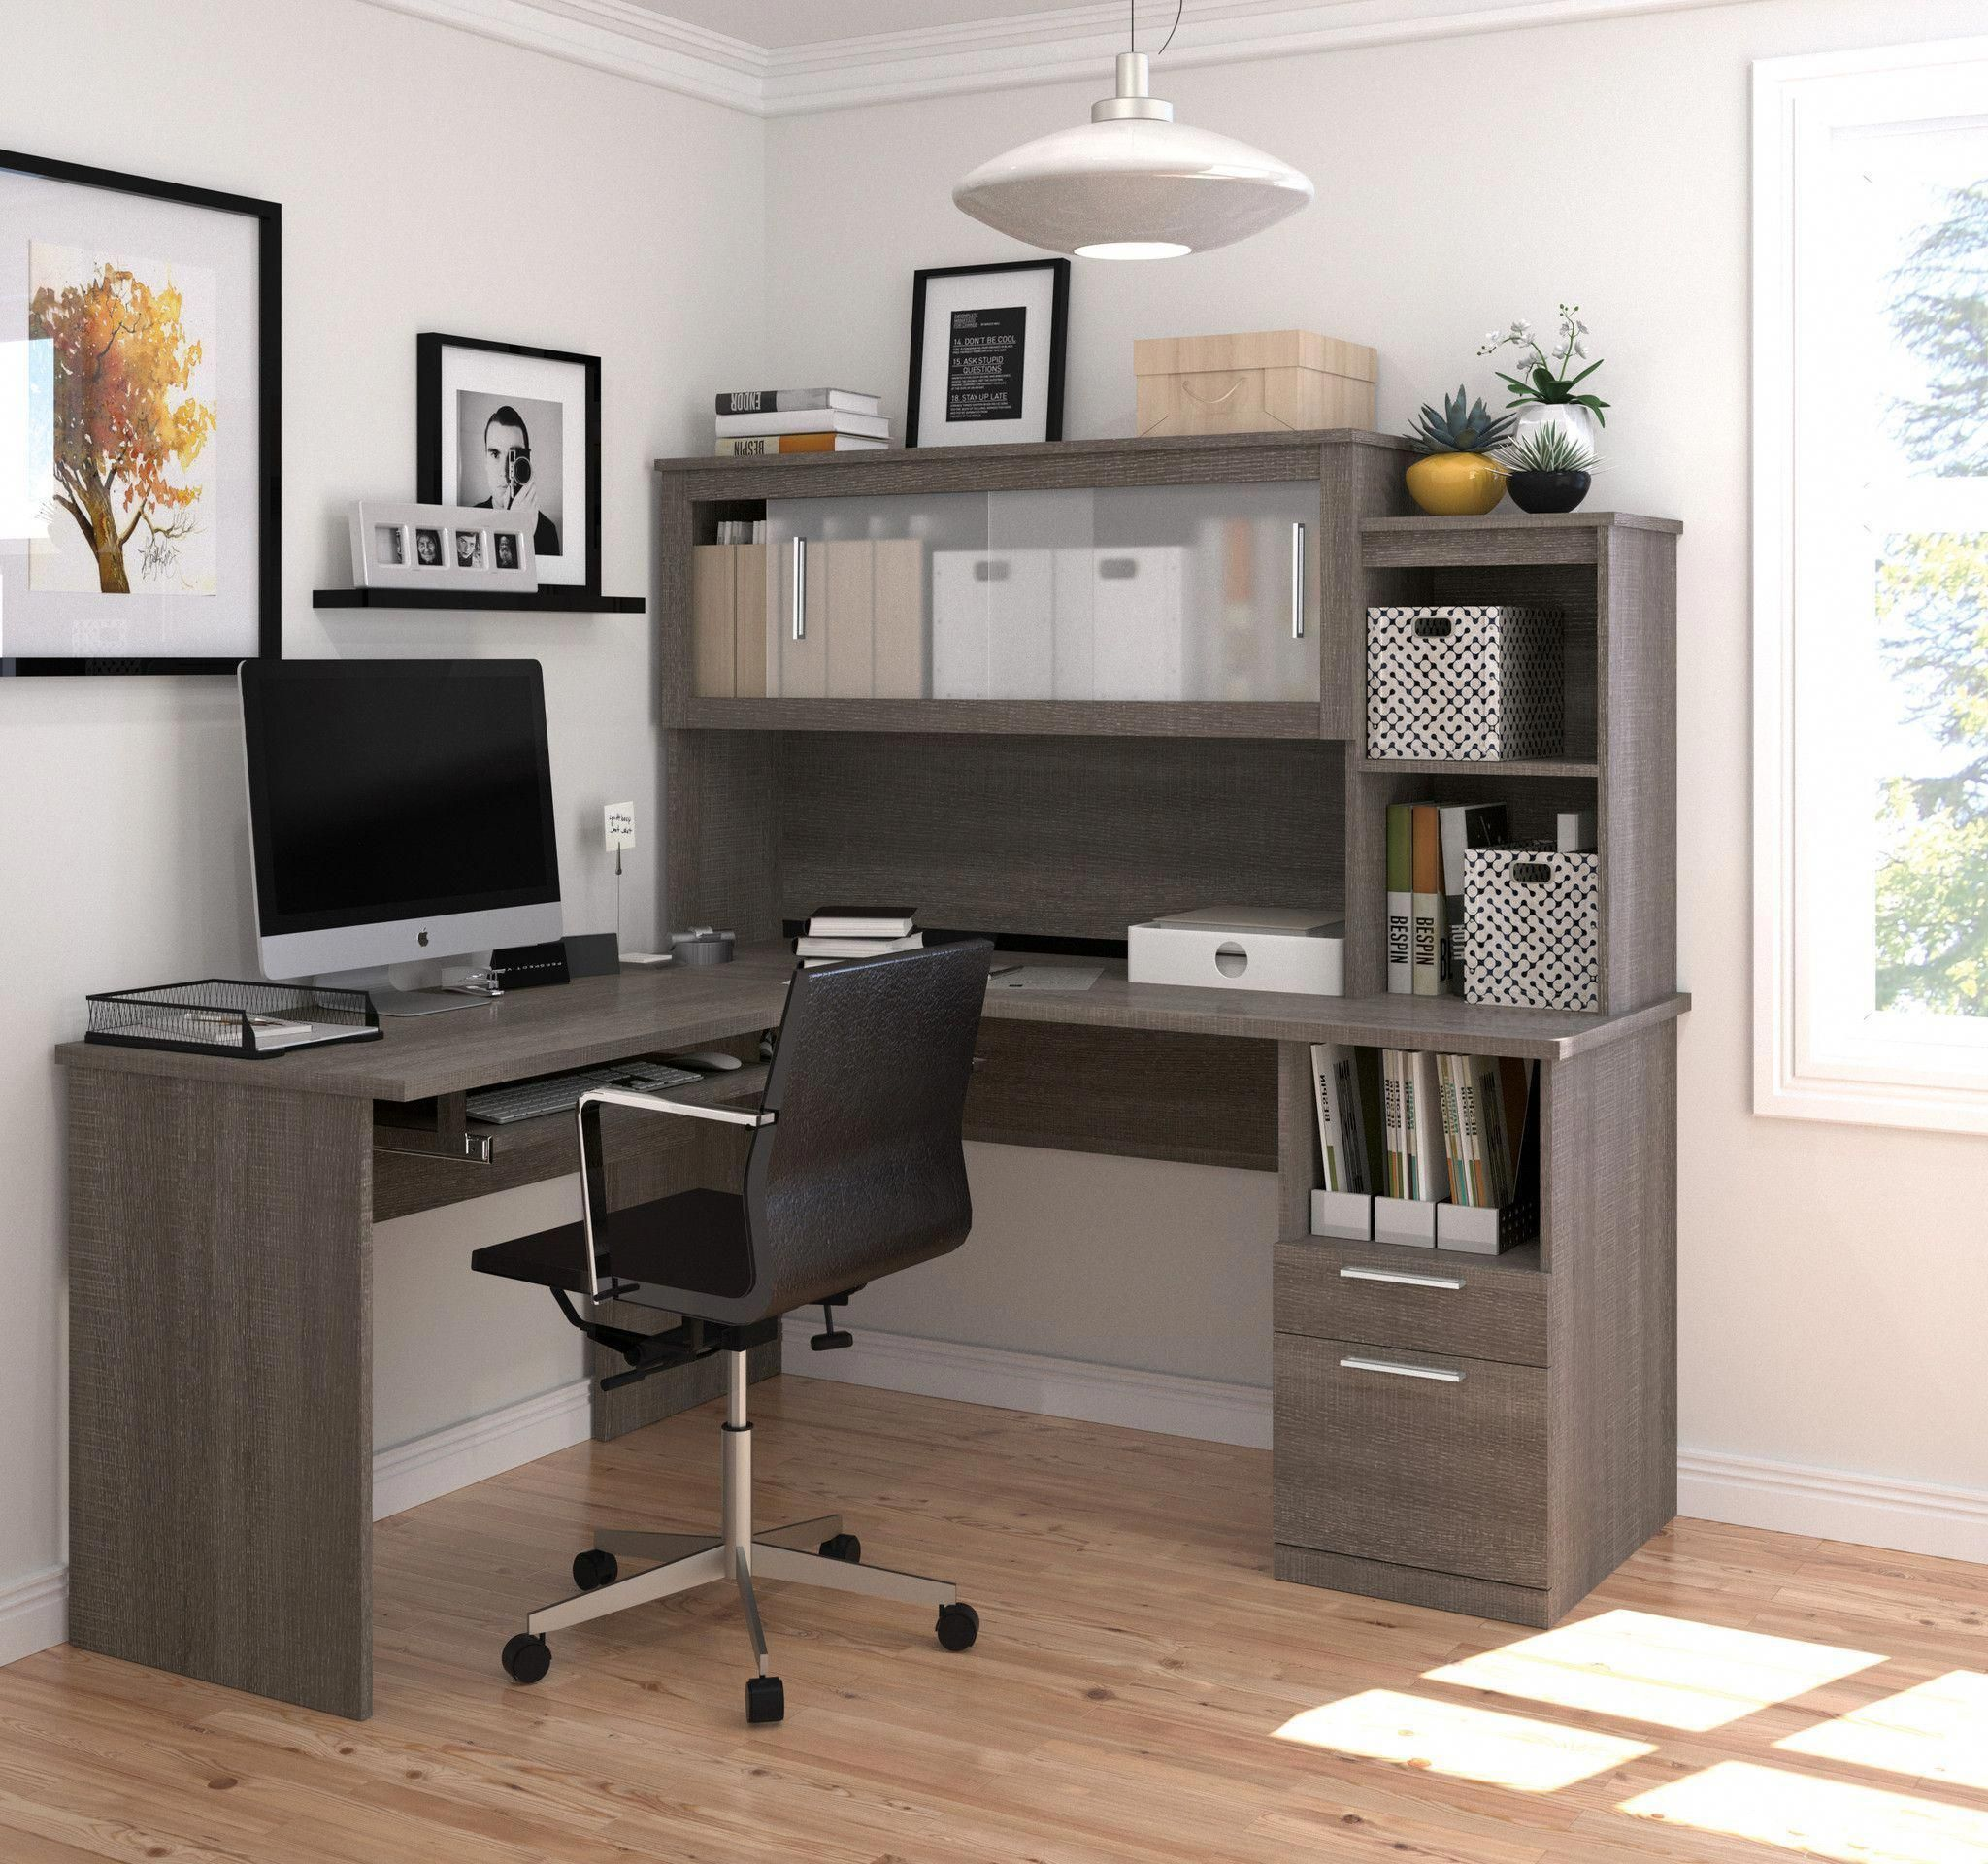 Home Office Ideas Ikea Desk Creative Office Desk Ideas Desk